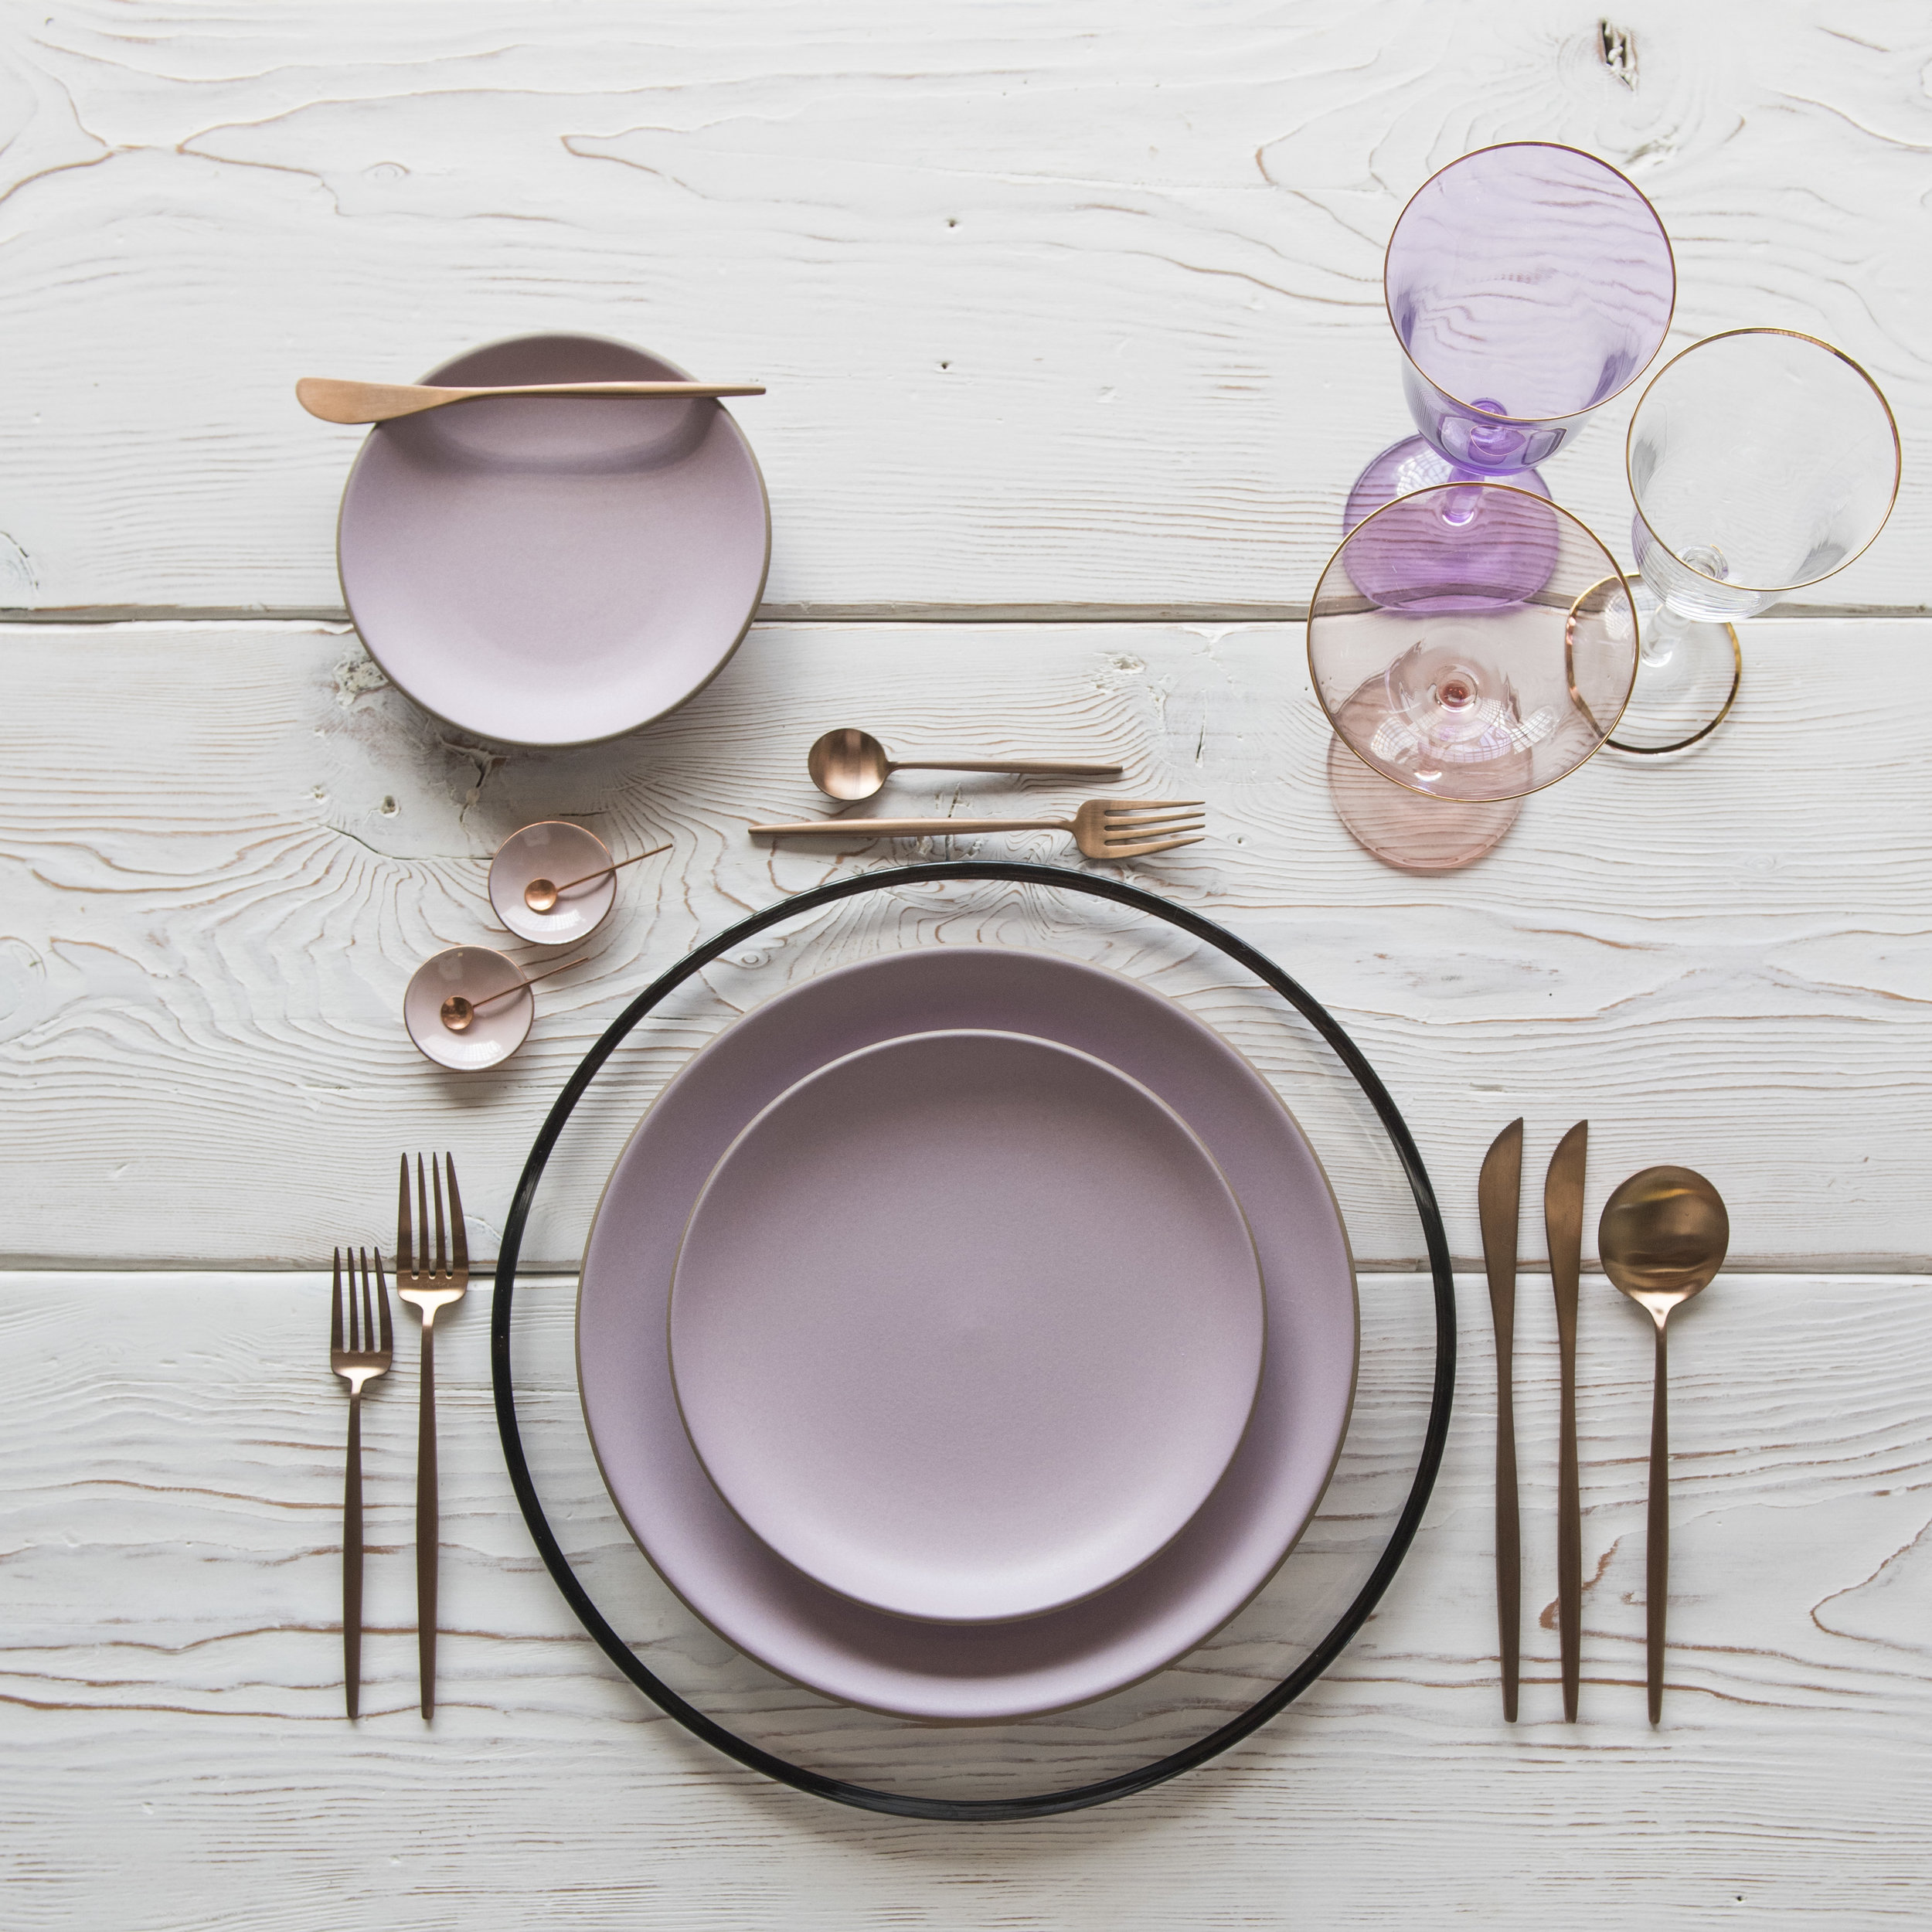 RENT: Halo Glass Chargers in Black + Custom Heath Ceramics in Wildflower + Moon Flatware in Brushed Rose Gold + Chloe 24k Gold Rimmed Stemware + Chloe 24k Gold Rimmed Goblet in Lilac + Bella 24k Gold Rimmed Stemware in Blush + Pink Enamel Salt Cellars + Tiny Copper Spoons  SHOP: Halo Glass Chargers in Black + Moon Flatware in Brushed Rose Gold + Chloe 24k Gold Rimmed Stemware + Bella 24k Gold Rimmed Stemware in Blush + Pink Enamel Salt Cellars + Tiny Copper Spoons